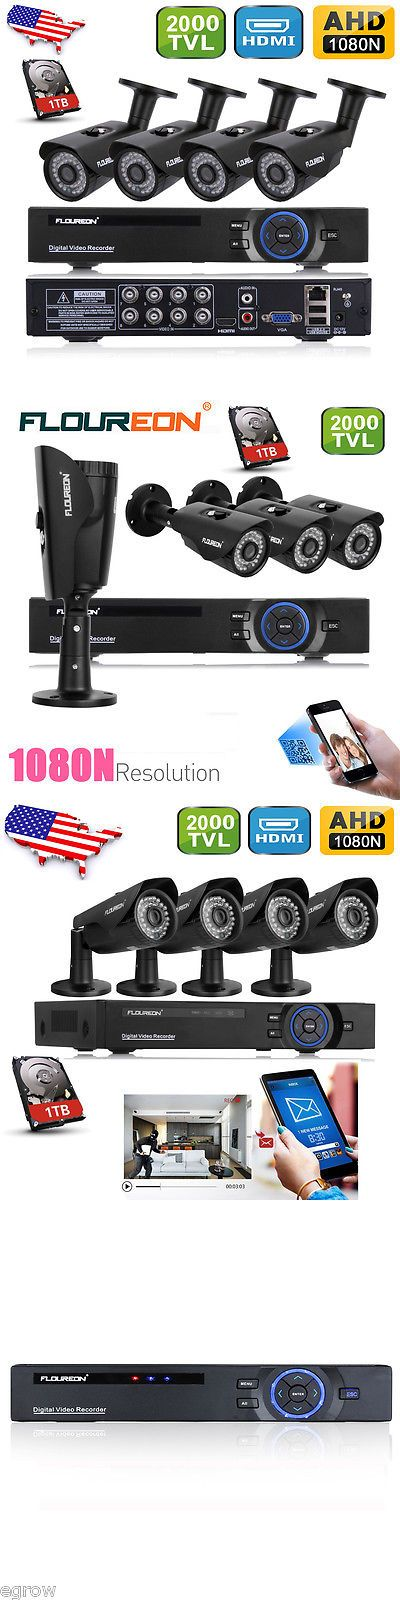 Surveillance Security Systems: 8 Channel 1080N Hdmi Dvr 2000Tvl Outdoor Cctv Home Security Camera System 1Tb BUY IT NOW ONLY: $161.99